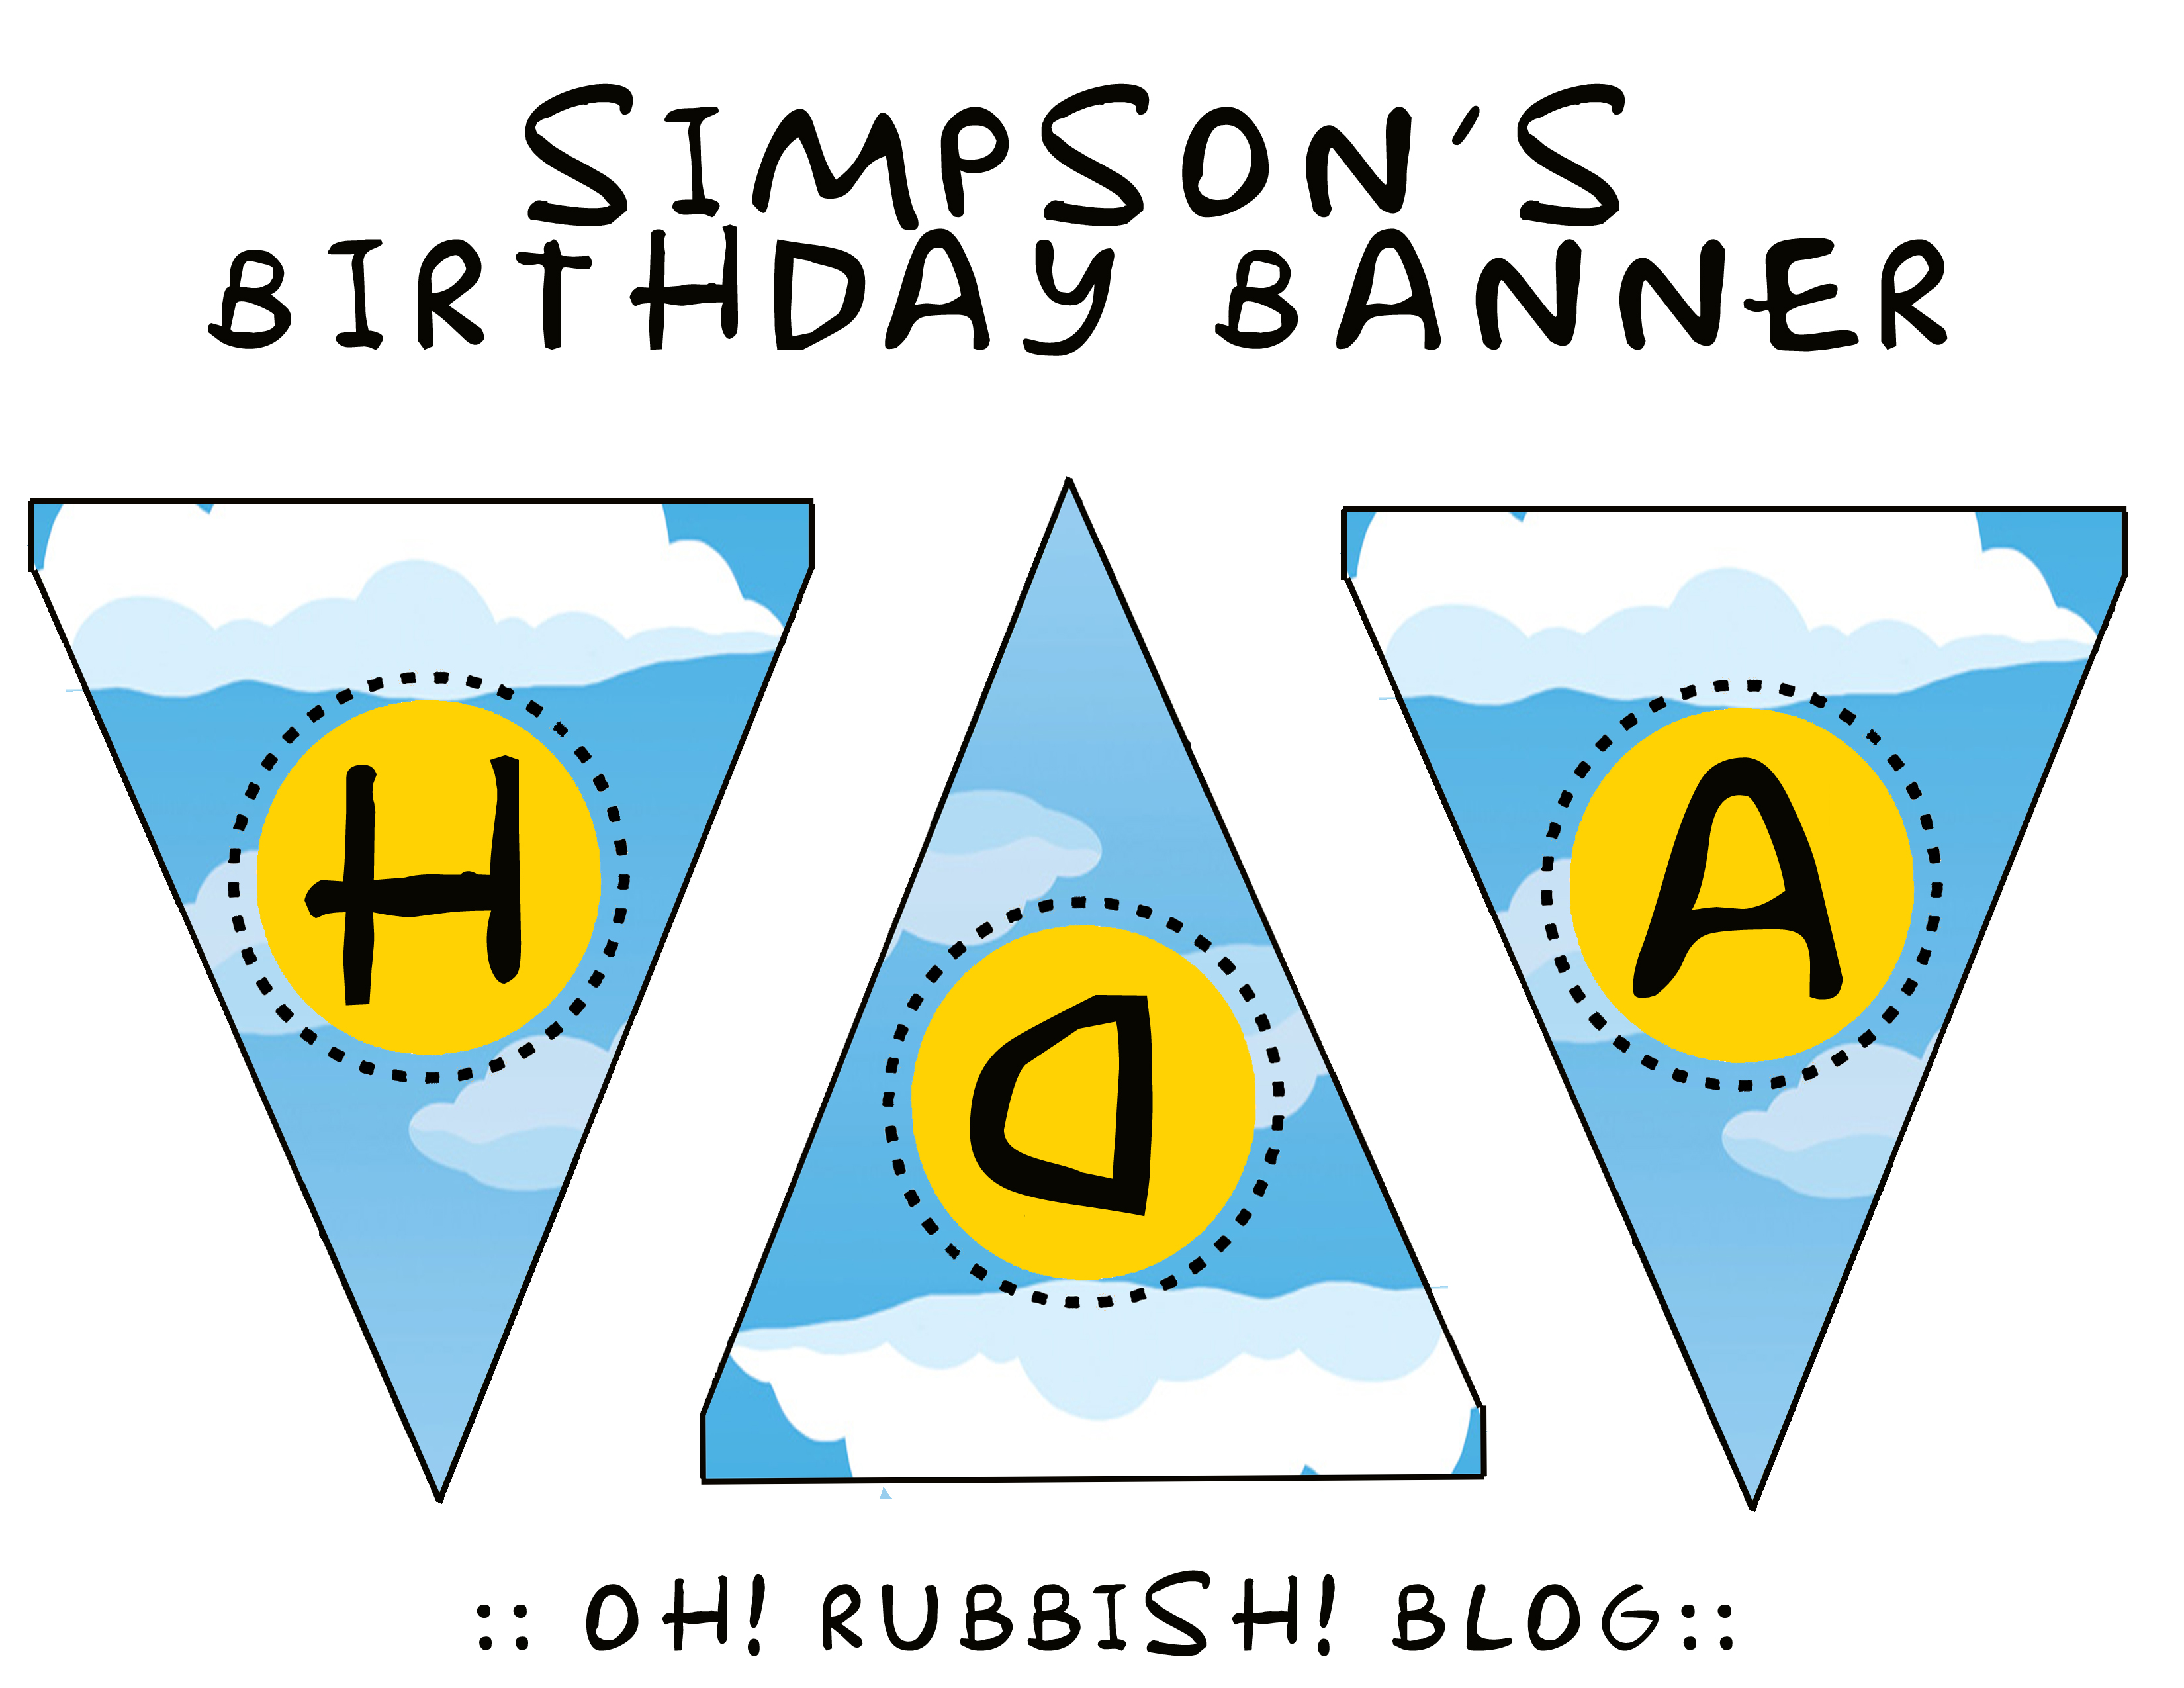 Simpsons Birthday Party Ideas Birthday Banner Duff Beer